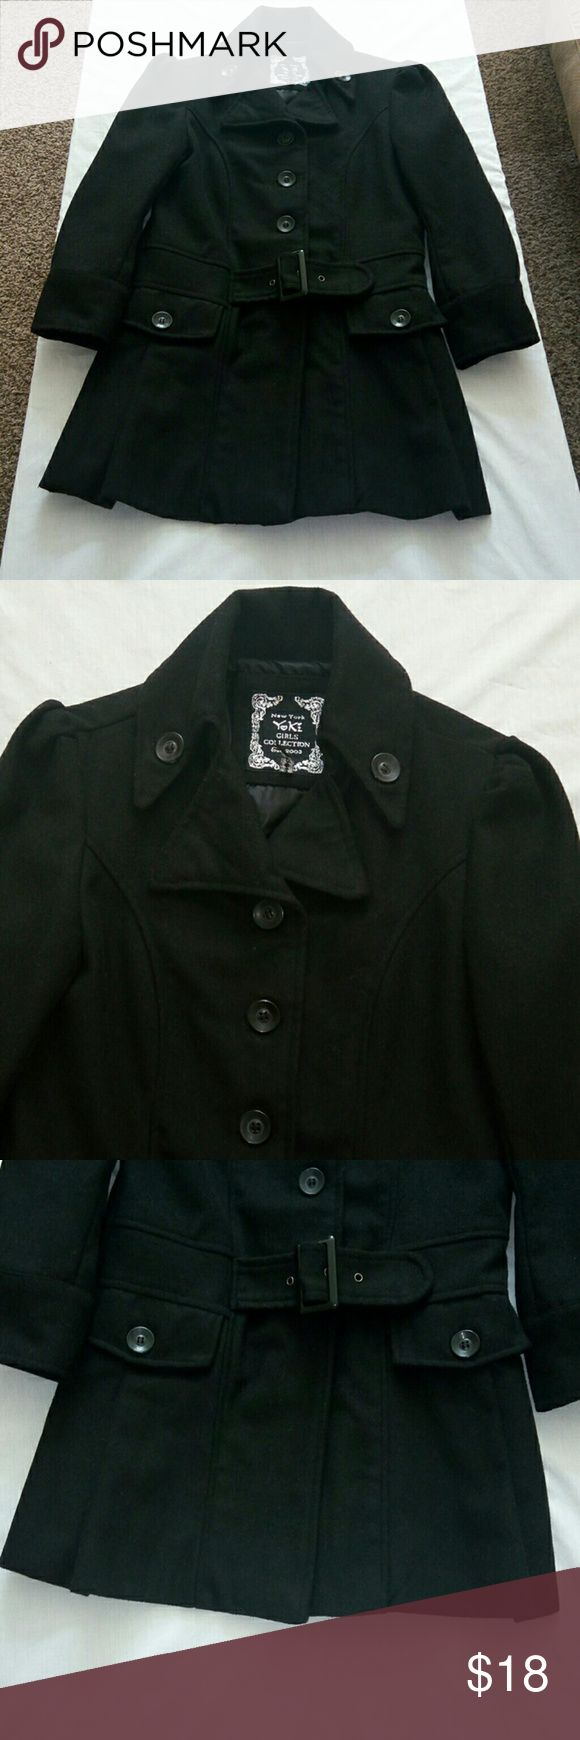 New York Yokz Girls Peacoat Size Large Pre owned New York Yokz girls collection lined peacoat. Size large. Front opening with button s and a belt, long sleeve New York Girls collection Jackets & Coats Pea Coats